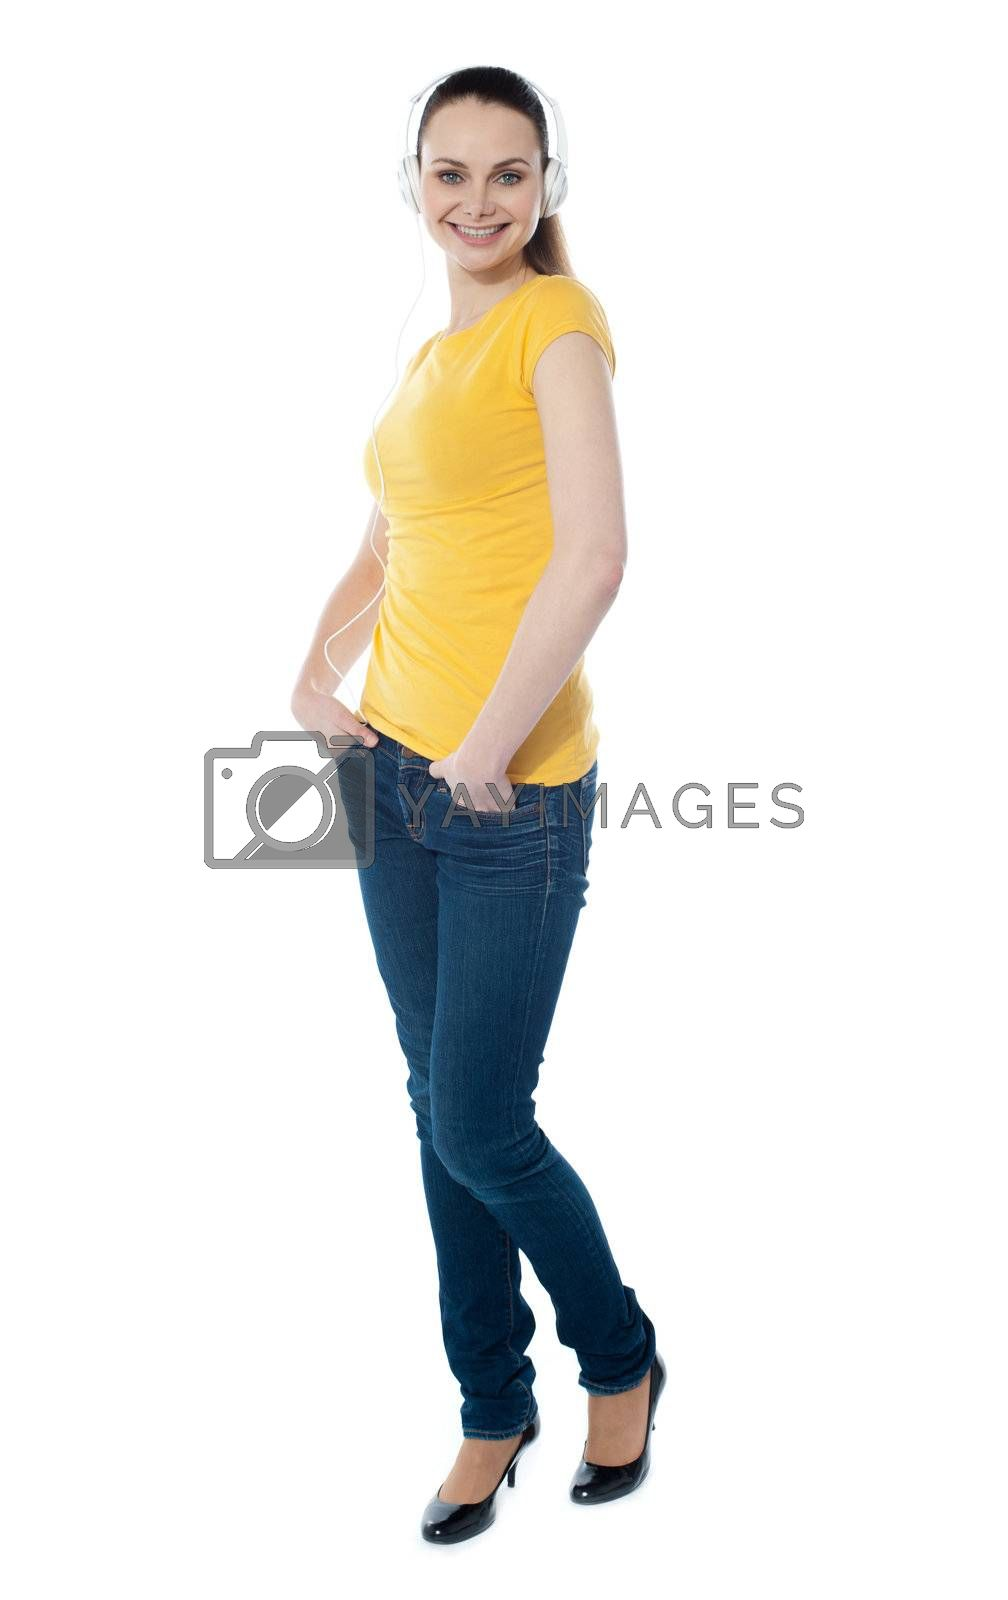 Stylish teenager enjoying music and posing with hands in pocket